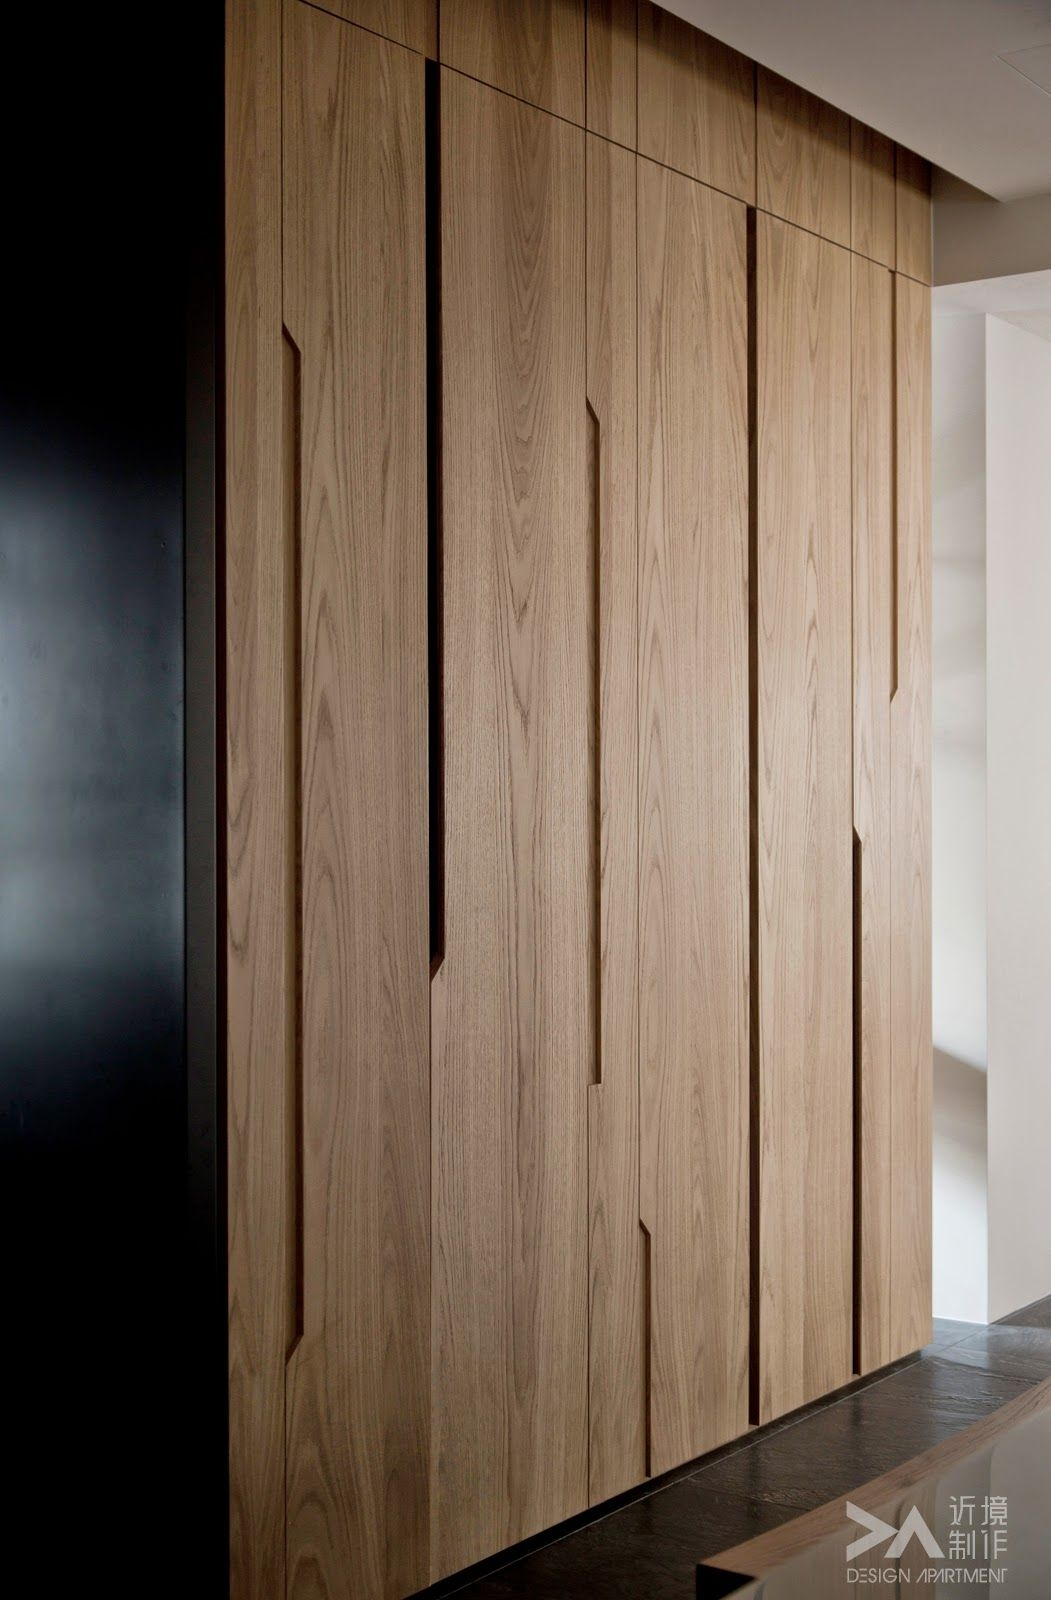 Create A New Look For Your Room With These Closet Door Ideas with regard to Bedroom Cupboard Sliding Doors